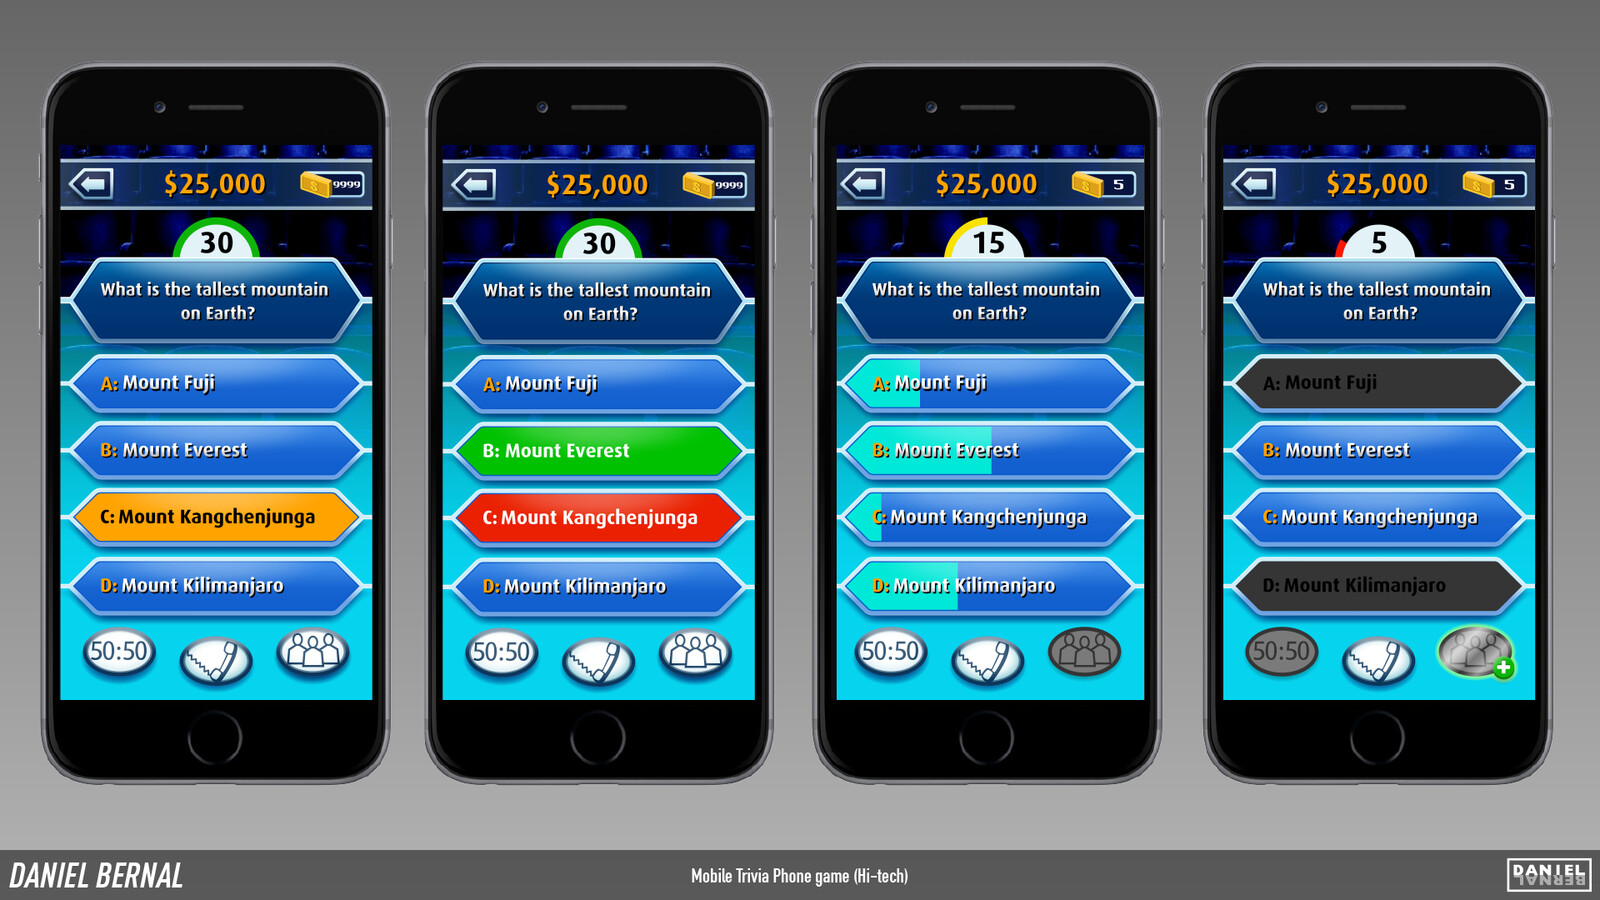 Mobile Trivia Phone Game Assets